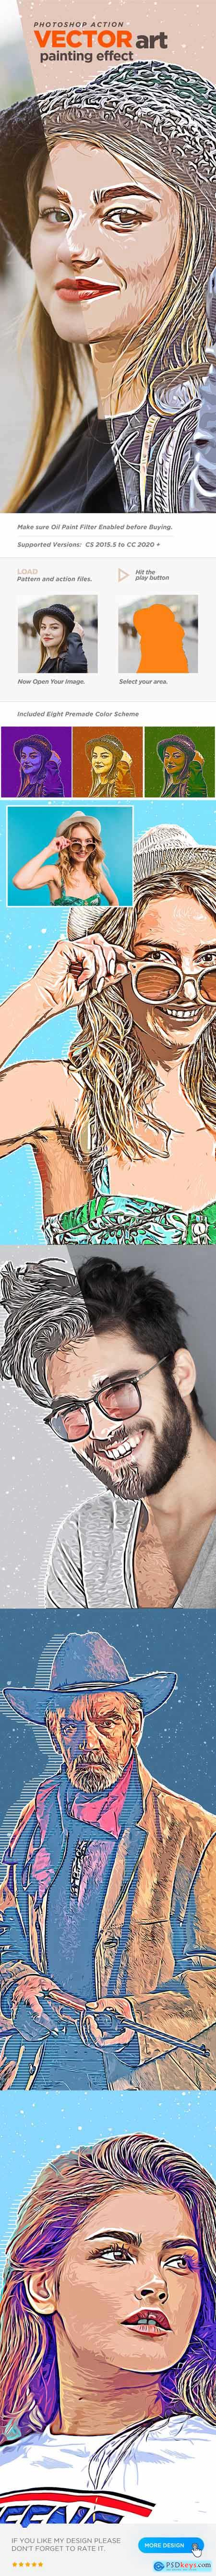 Vector Art Painting Effect Photoshop Action 27010115